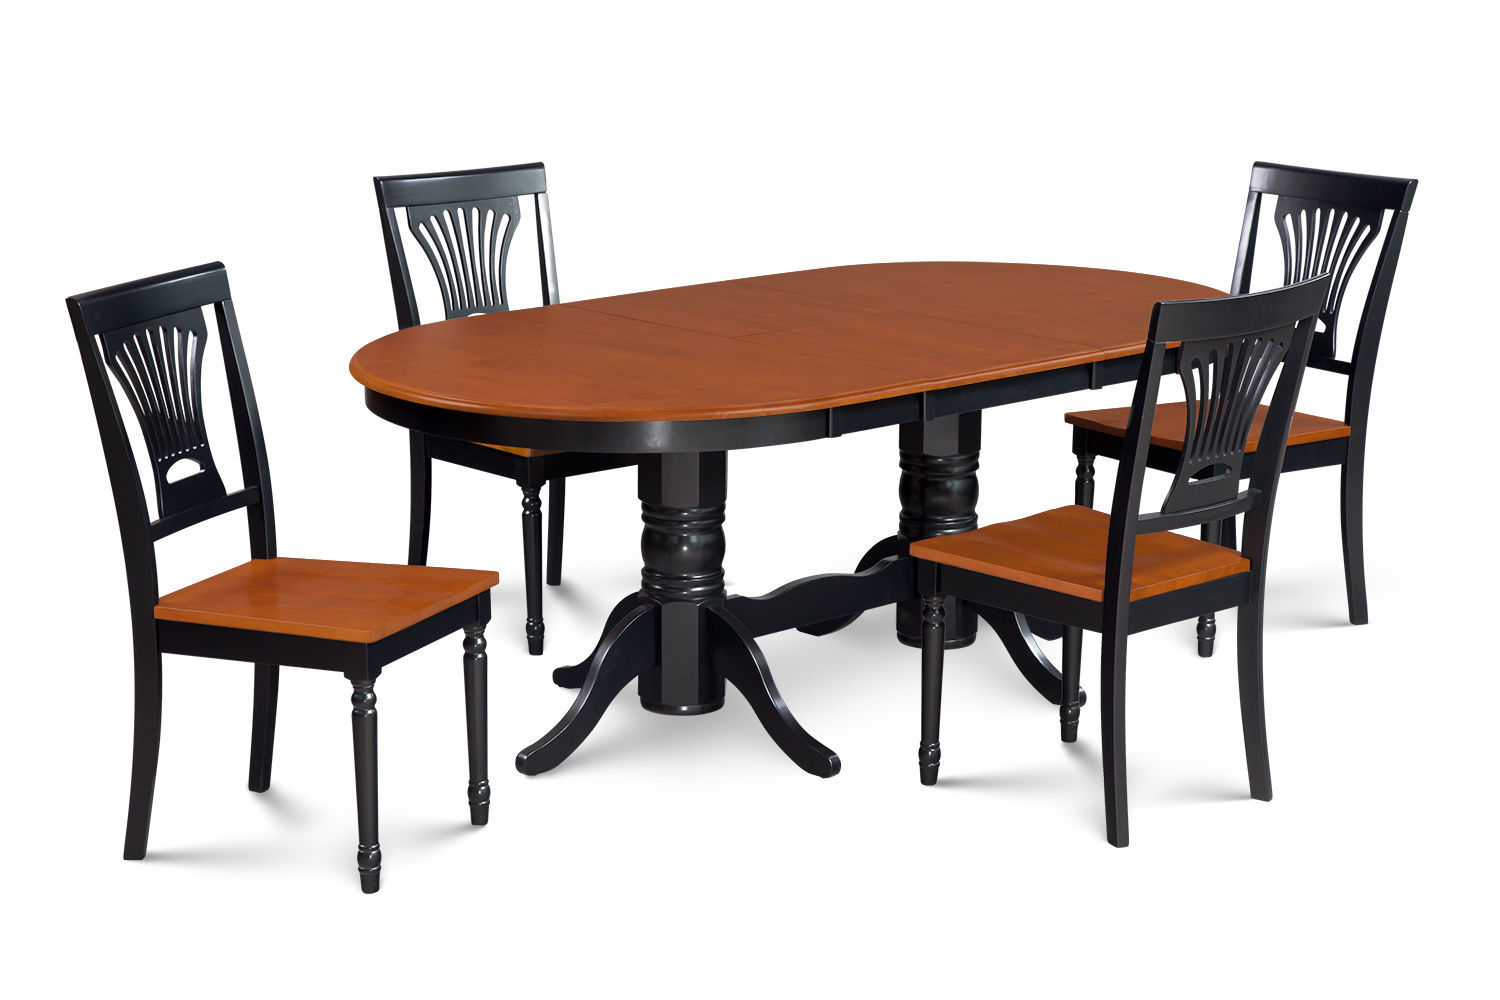 SOMERVILLE OVAL DINETTE DINING ROOM TABLE SET IN BLACK & CHERRY